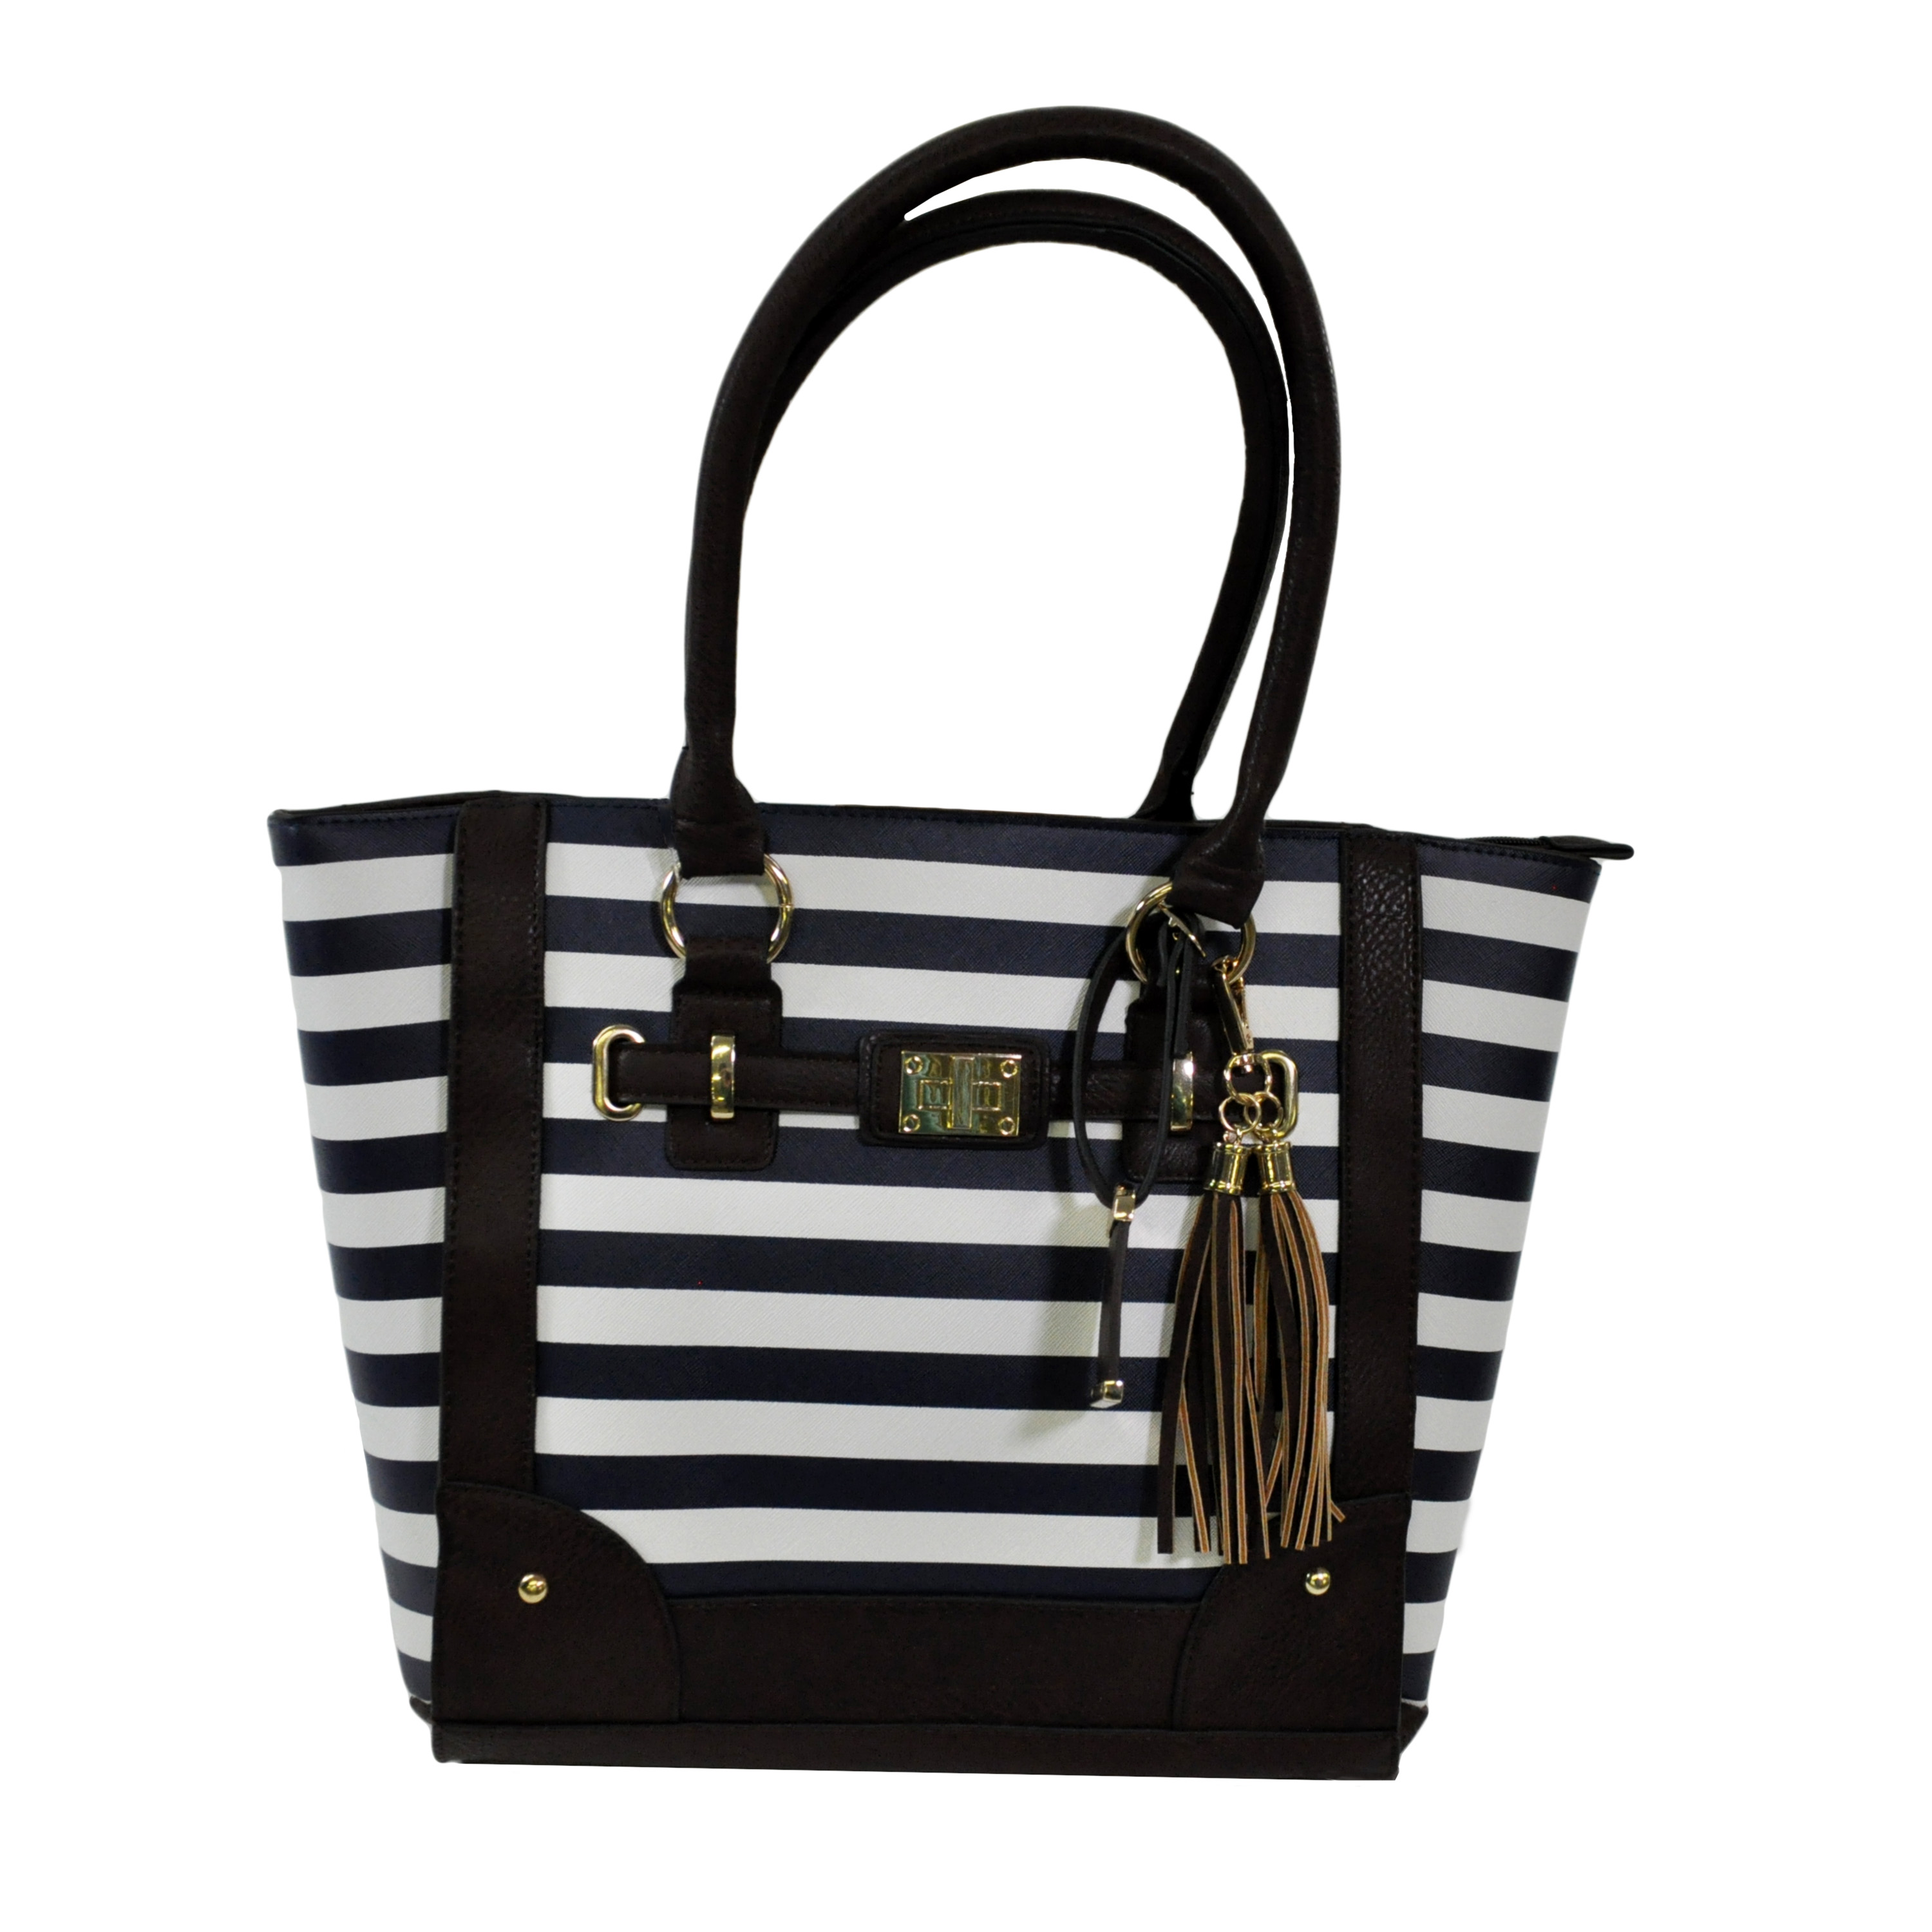 Tote Style Concealed Carry Purse w/ Holster- Navy Stripe (17 x 12 x 5)